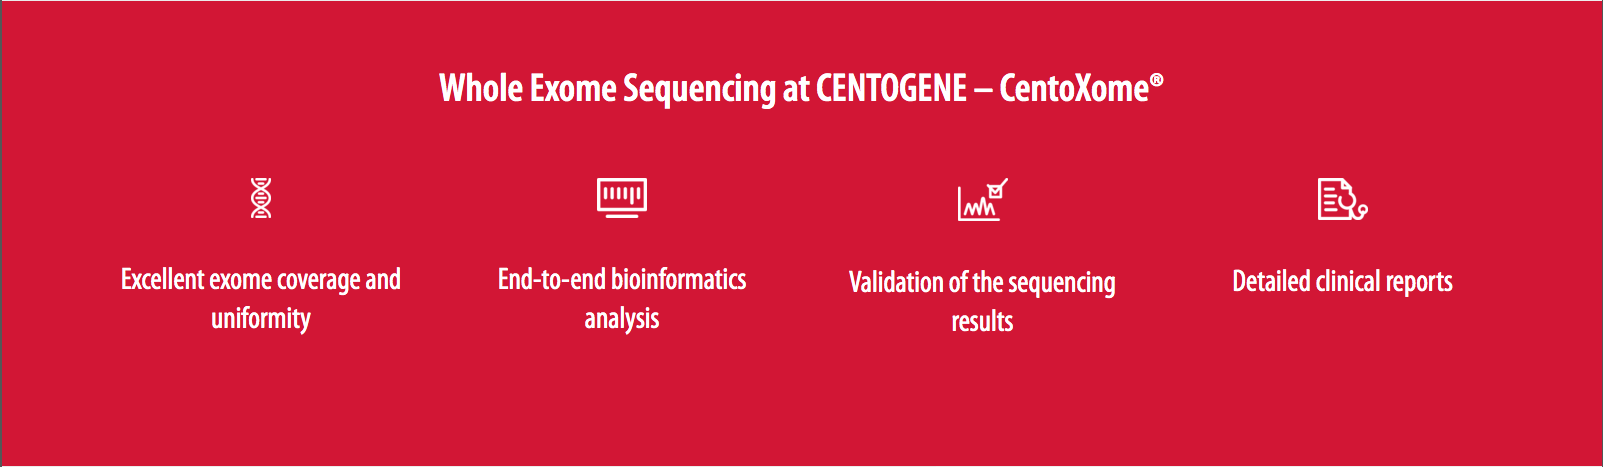 Features of Whole Exome Sequencing at Centogene